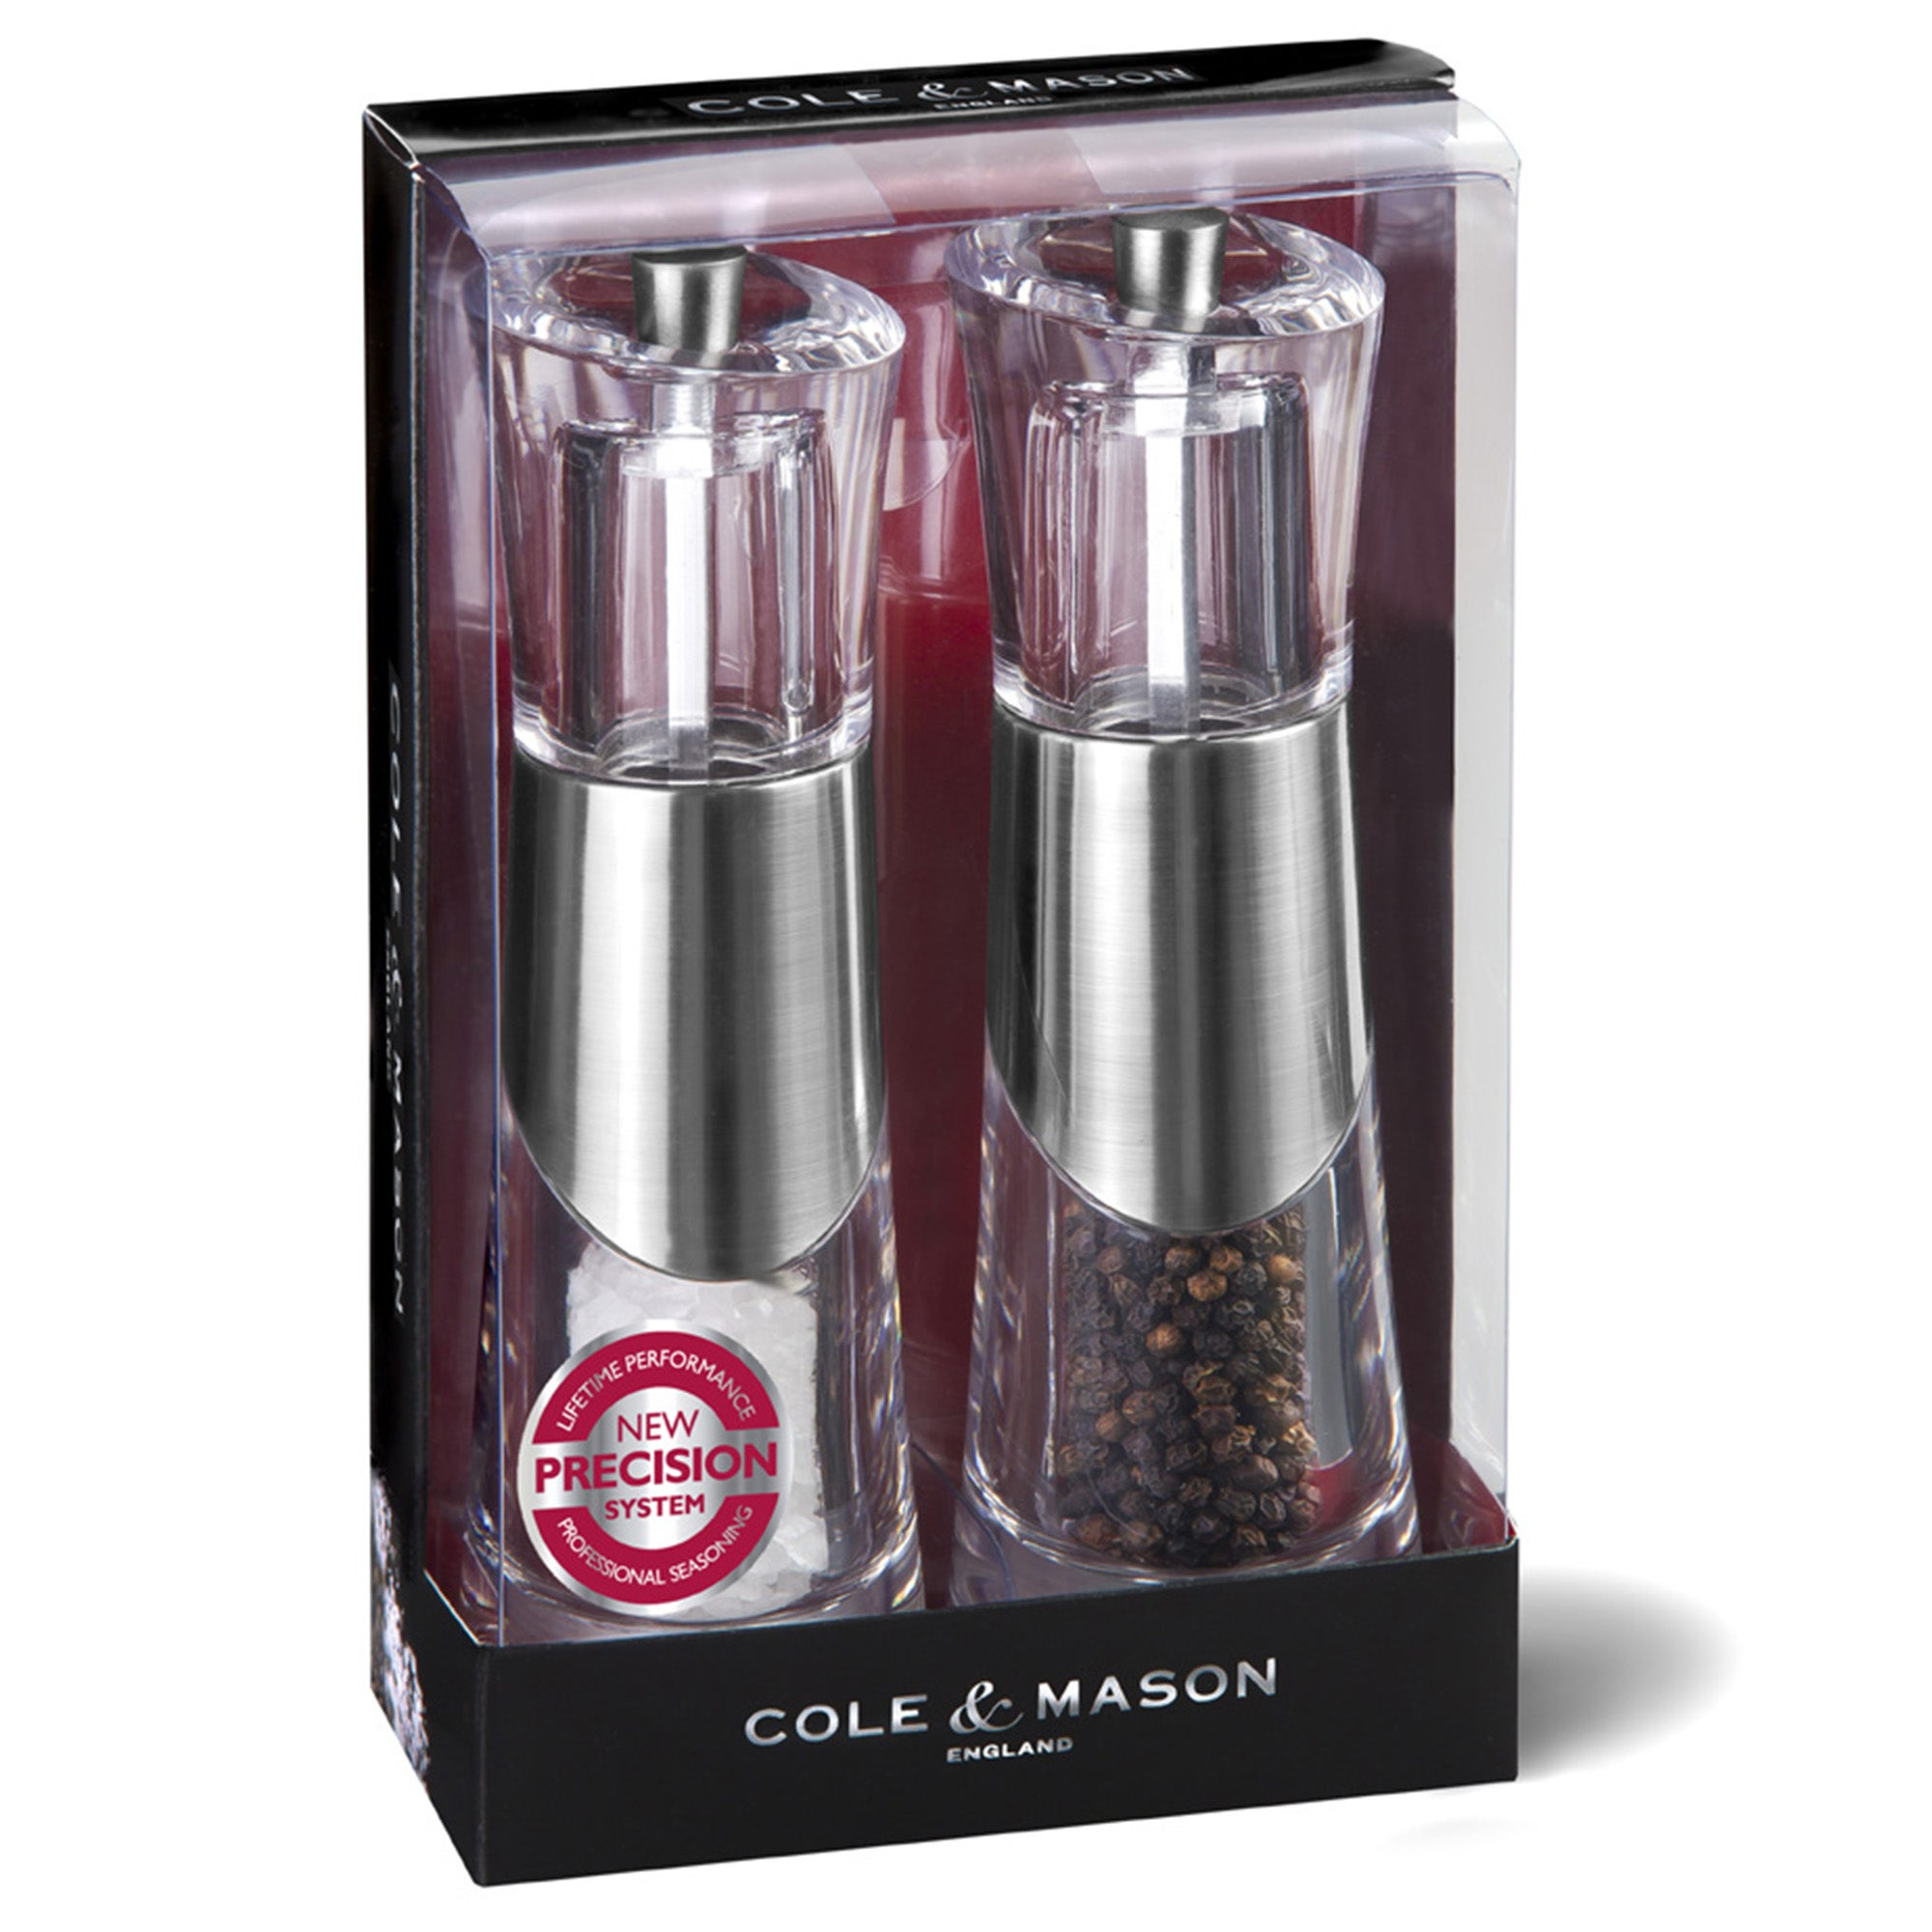 Photo of Cole & mason bobbi precision salt and pepper mill set clear